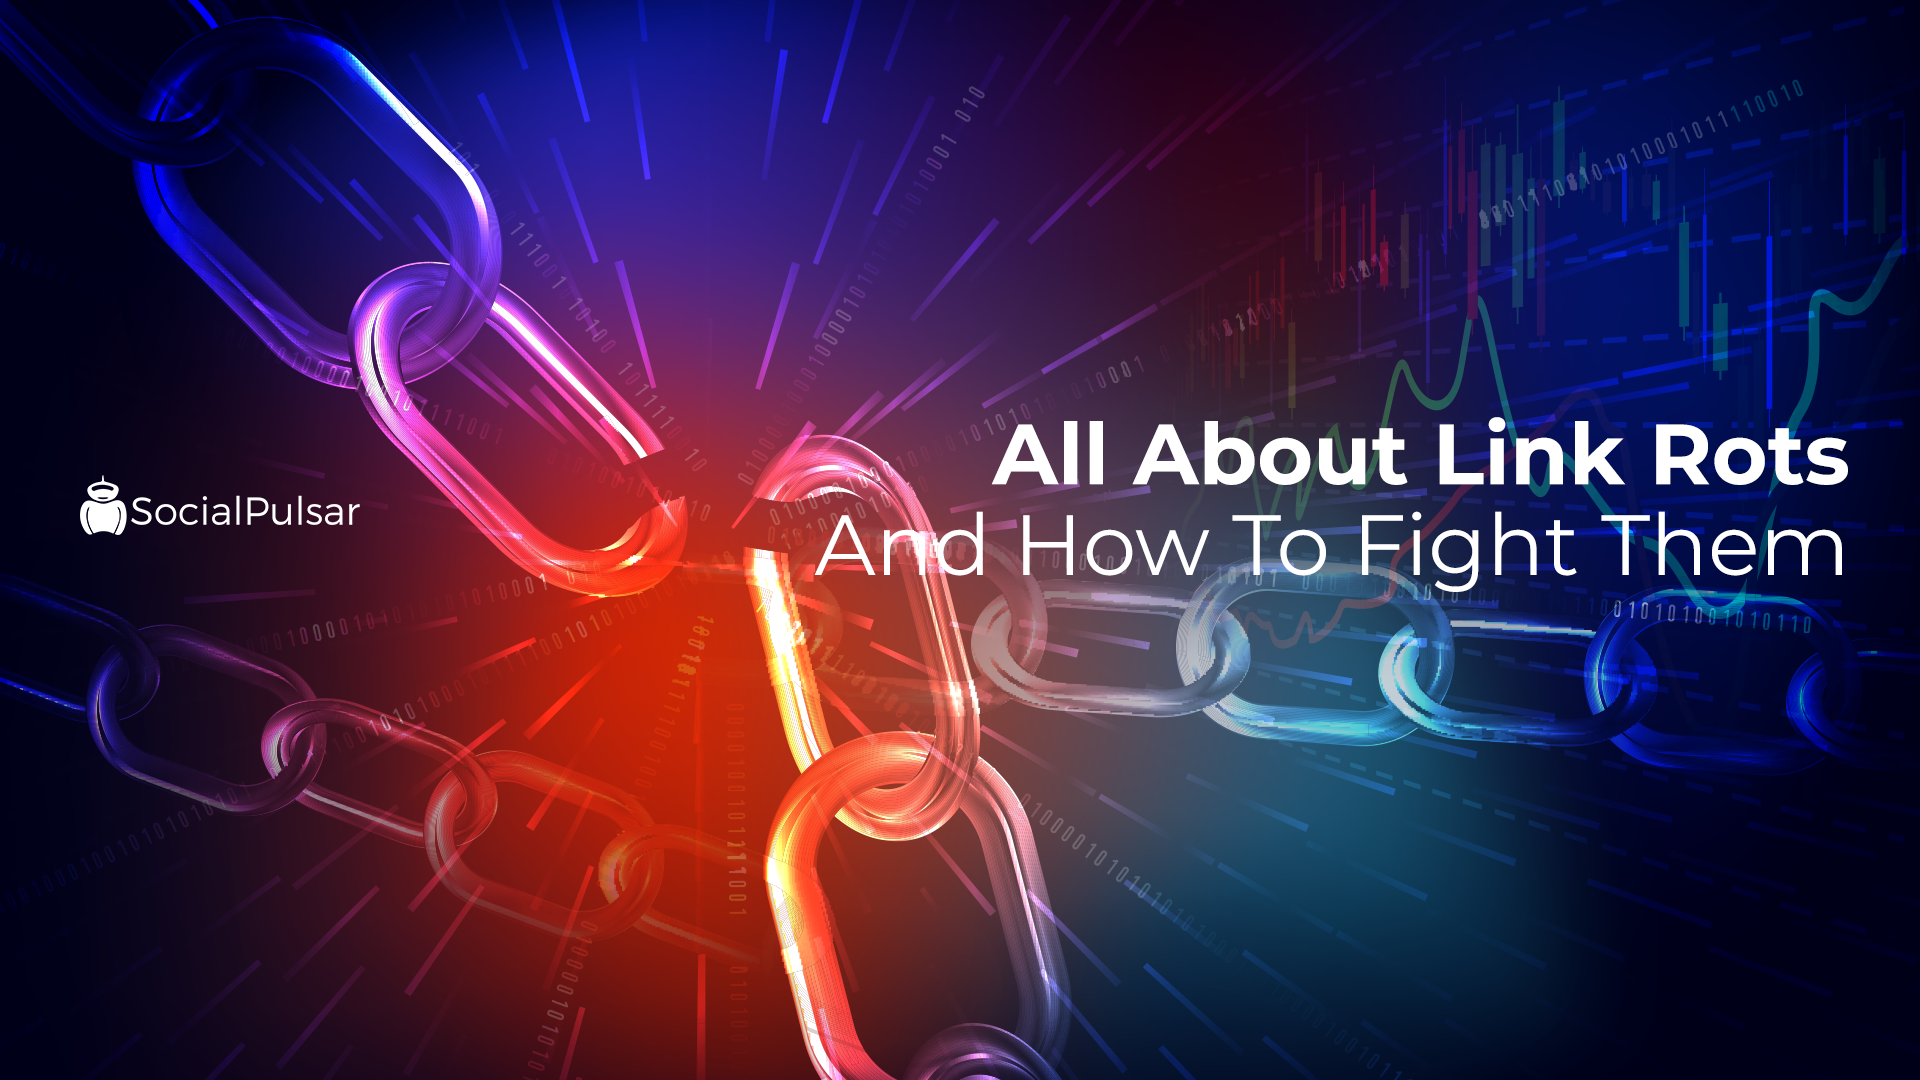 All About Link Rots And How To Fight Them